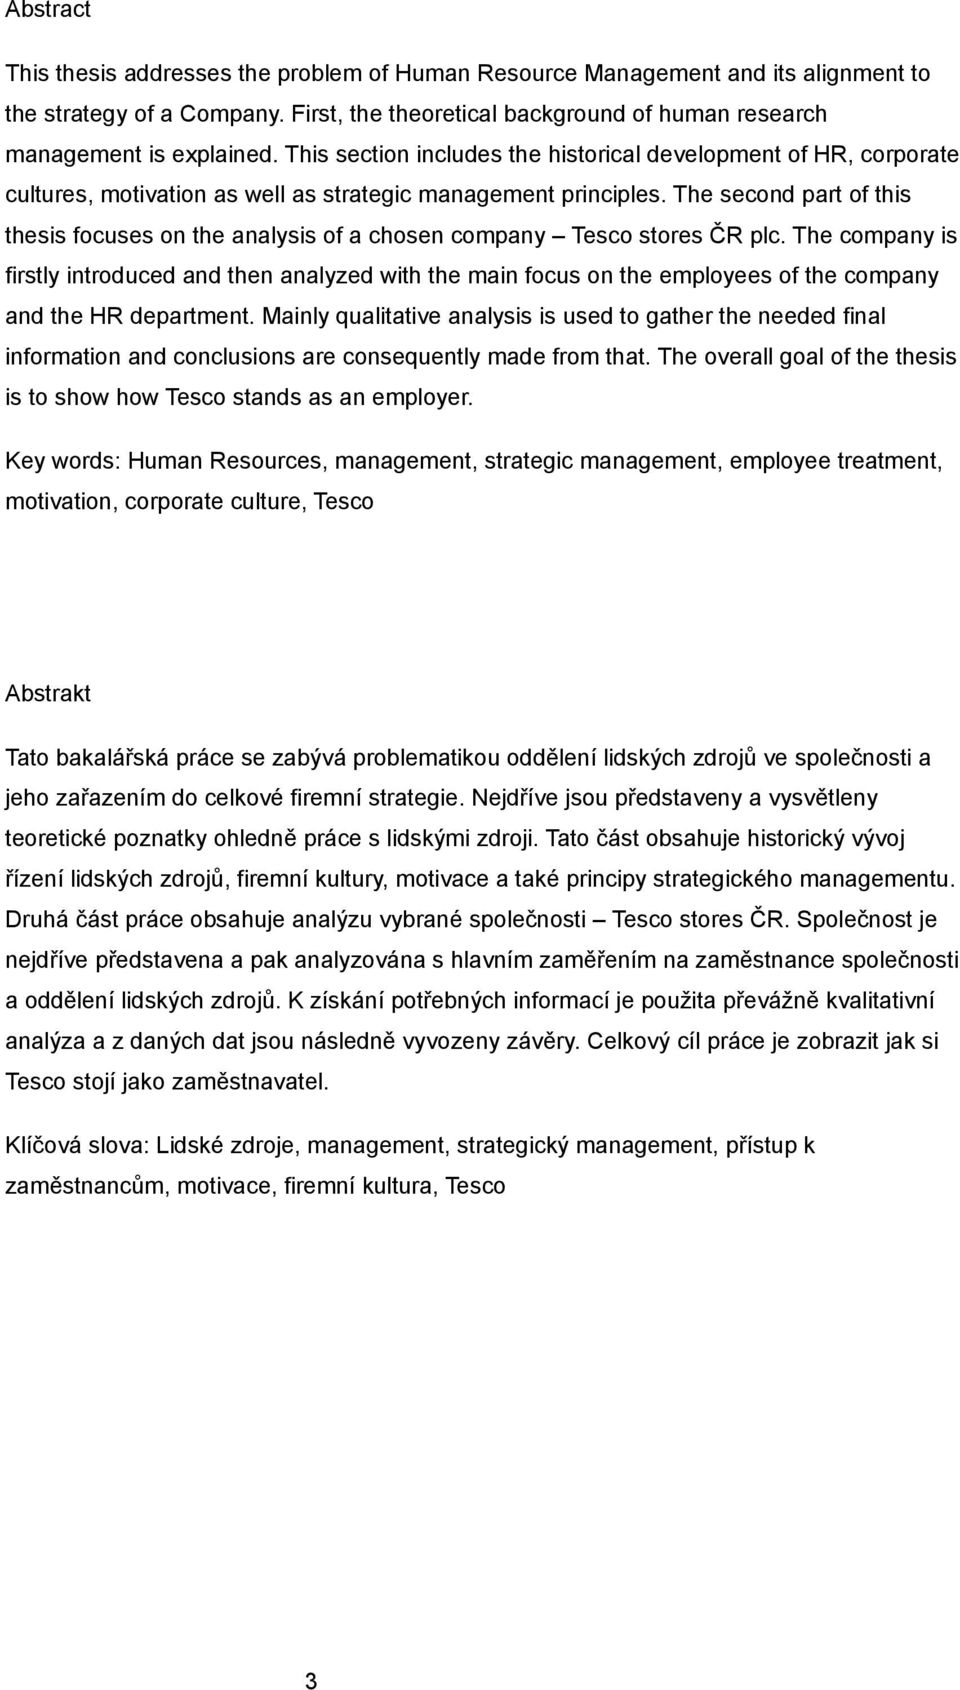 The second part of this thesis focuses on the analysis of a chosen company Tesco stores ČR plc.